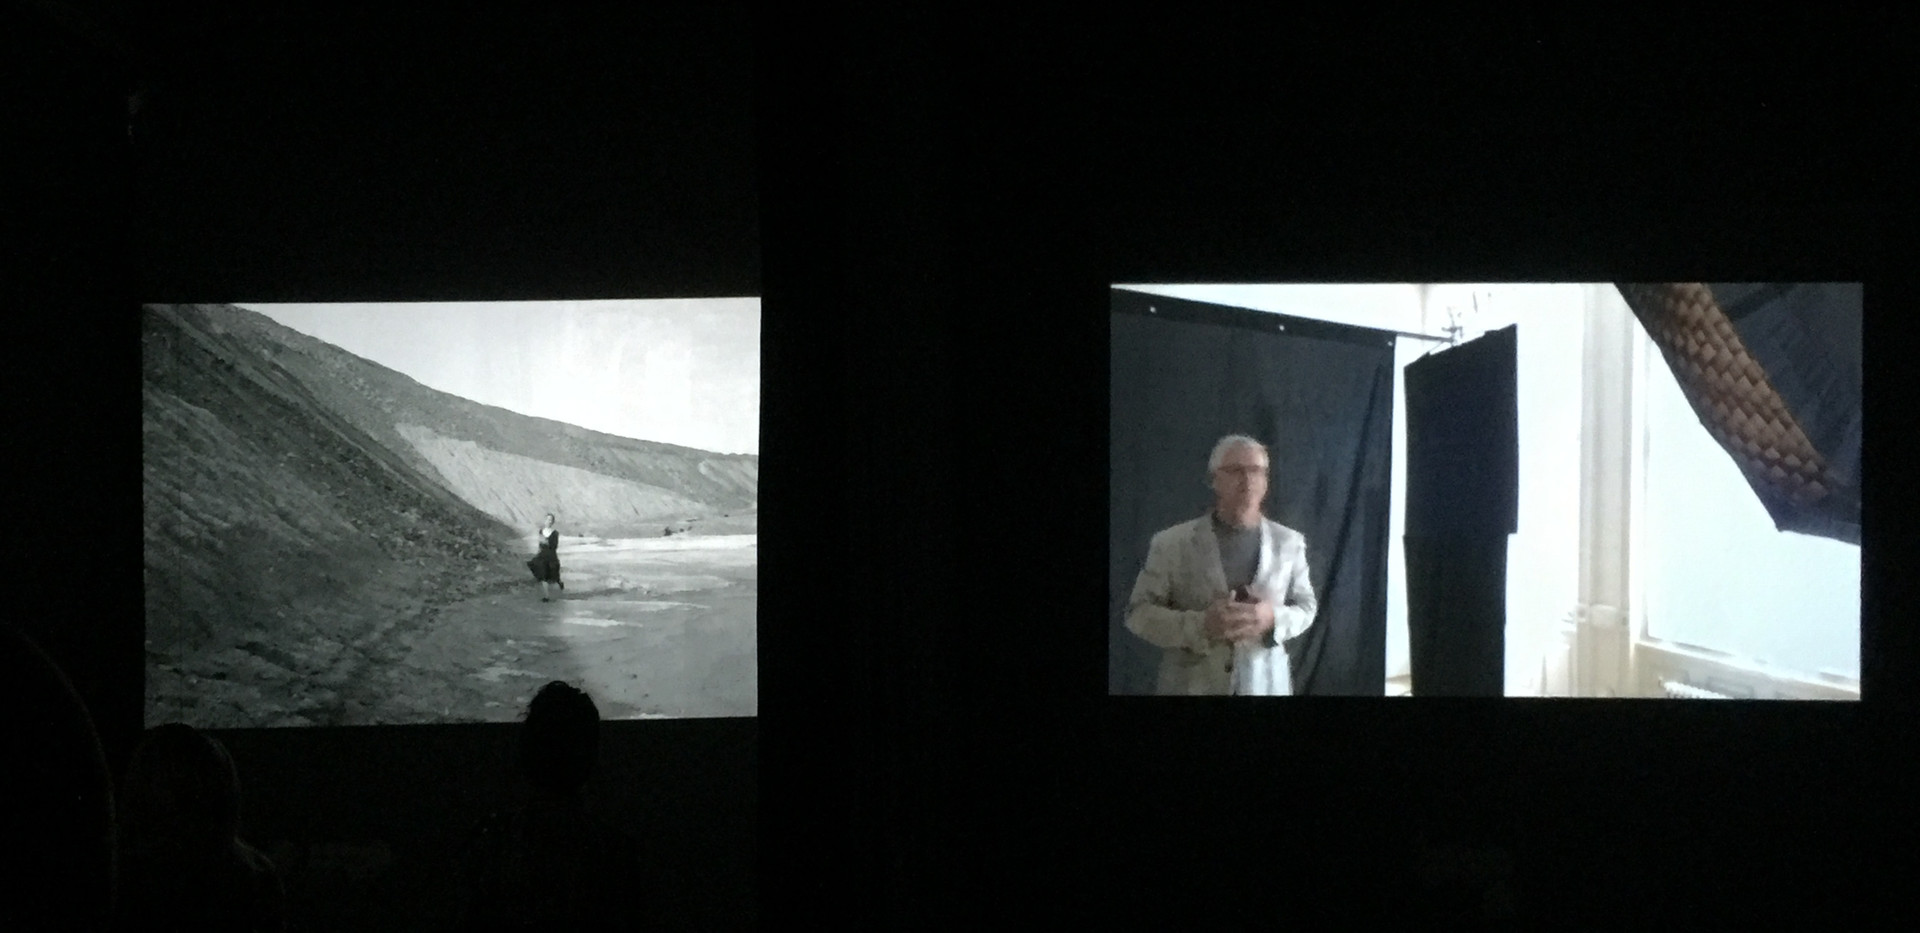 Left: Shirin Neshat, Roja, 2016 Right: Dariush Zandi, video of Image of the Self, 2017